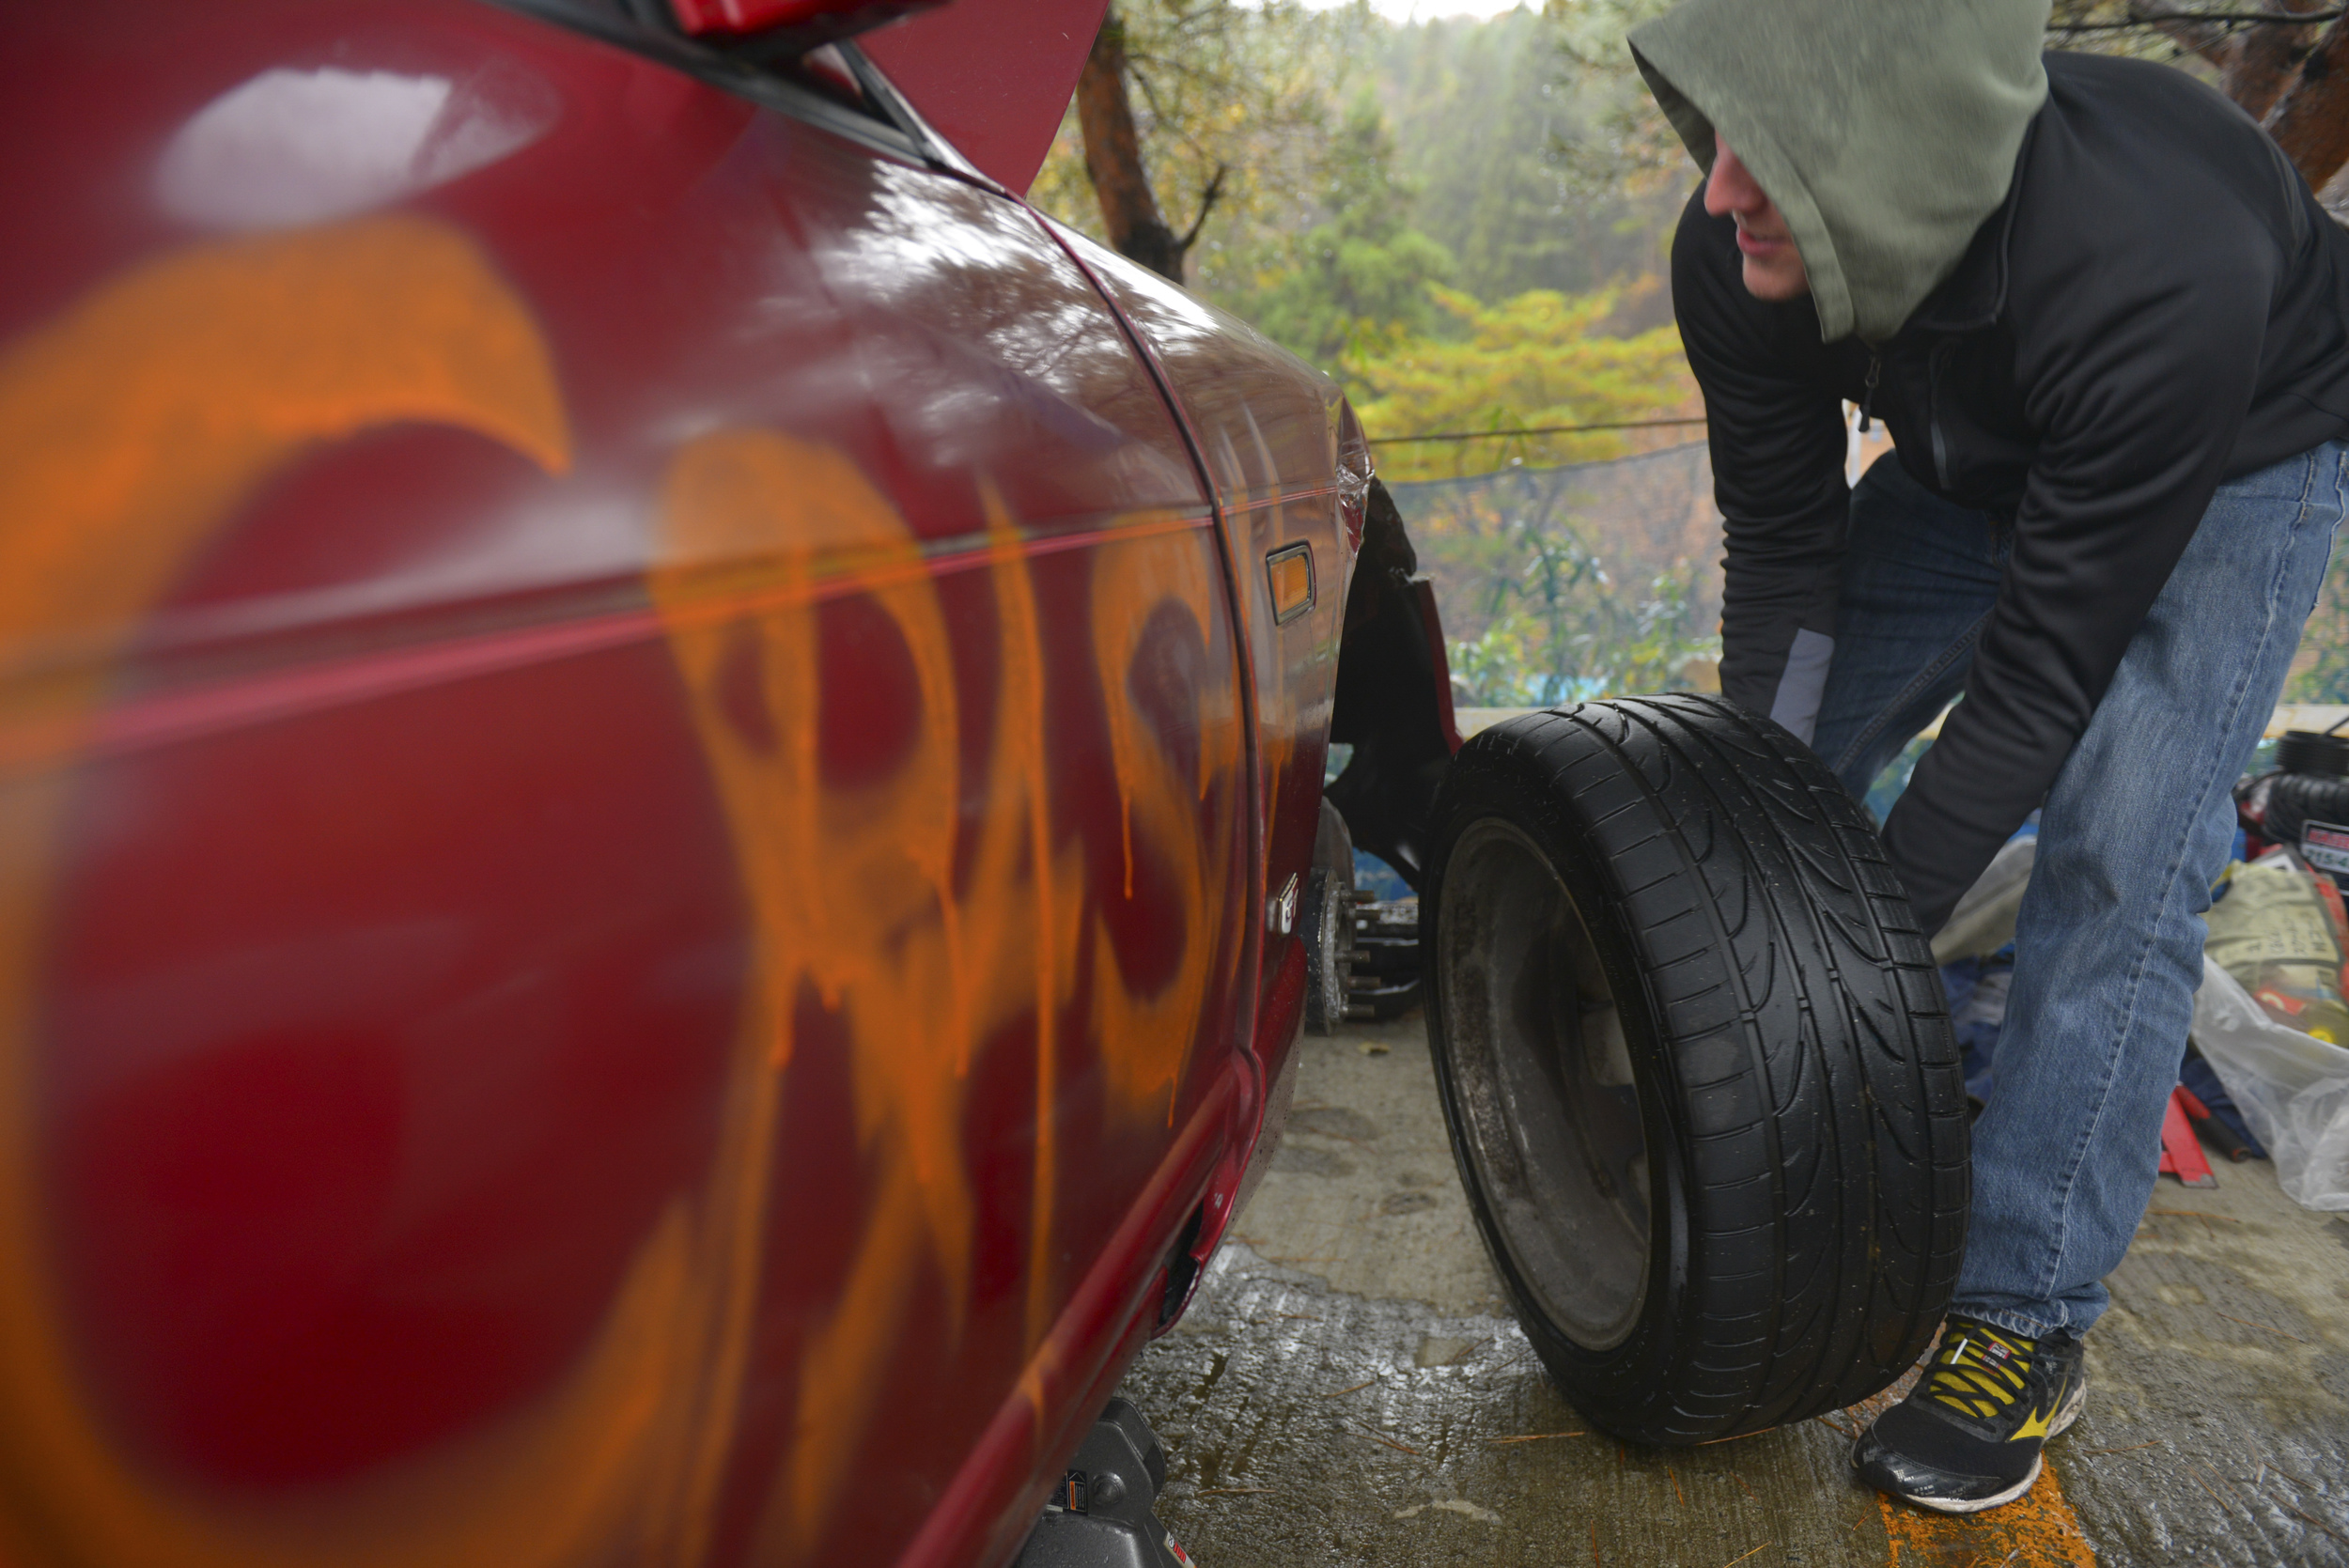 Airman 1st Class Hudson McCormick, 374th Maintenance Squadron hydraulics technician, changes the tire on a drift car at Ebisu Circuit, Japan, Nov. 14, 2015. McCormick and his friends spent many hours repairing the cars between stints on the track, time that was also used for socializing and meeting new people. (U.S. Air Force photo by Airman 1st Class Elizabeth Baker/Released)